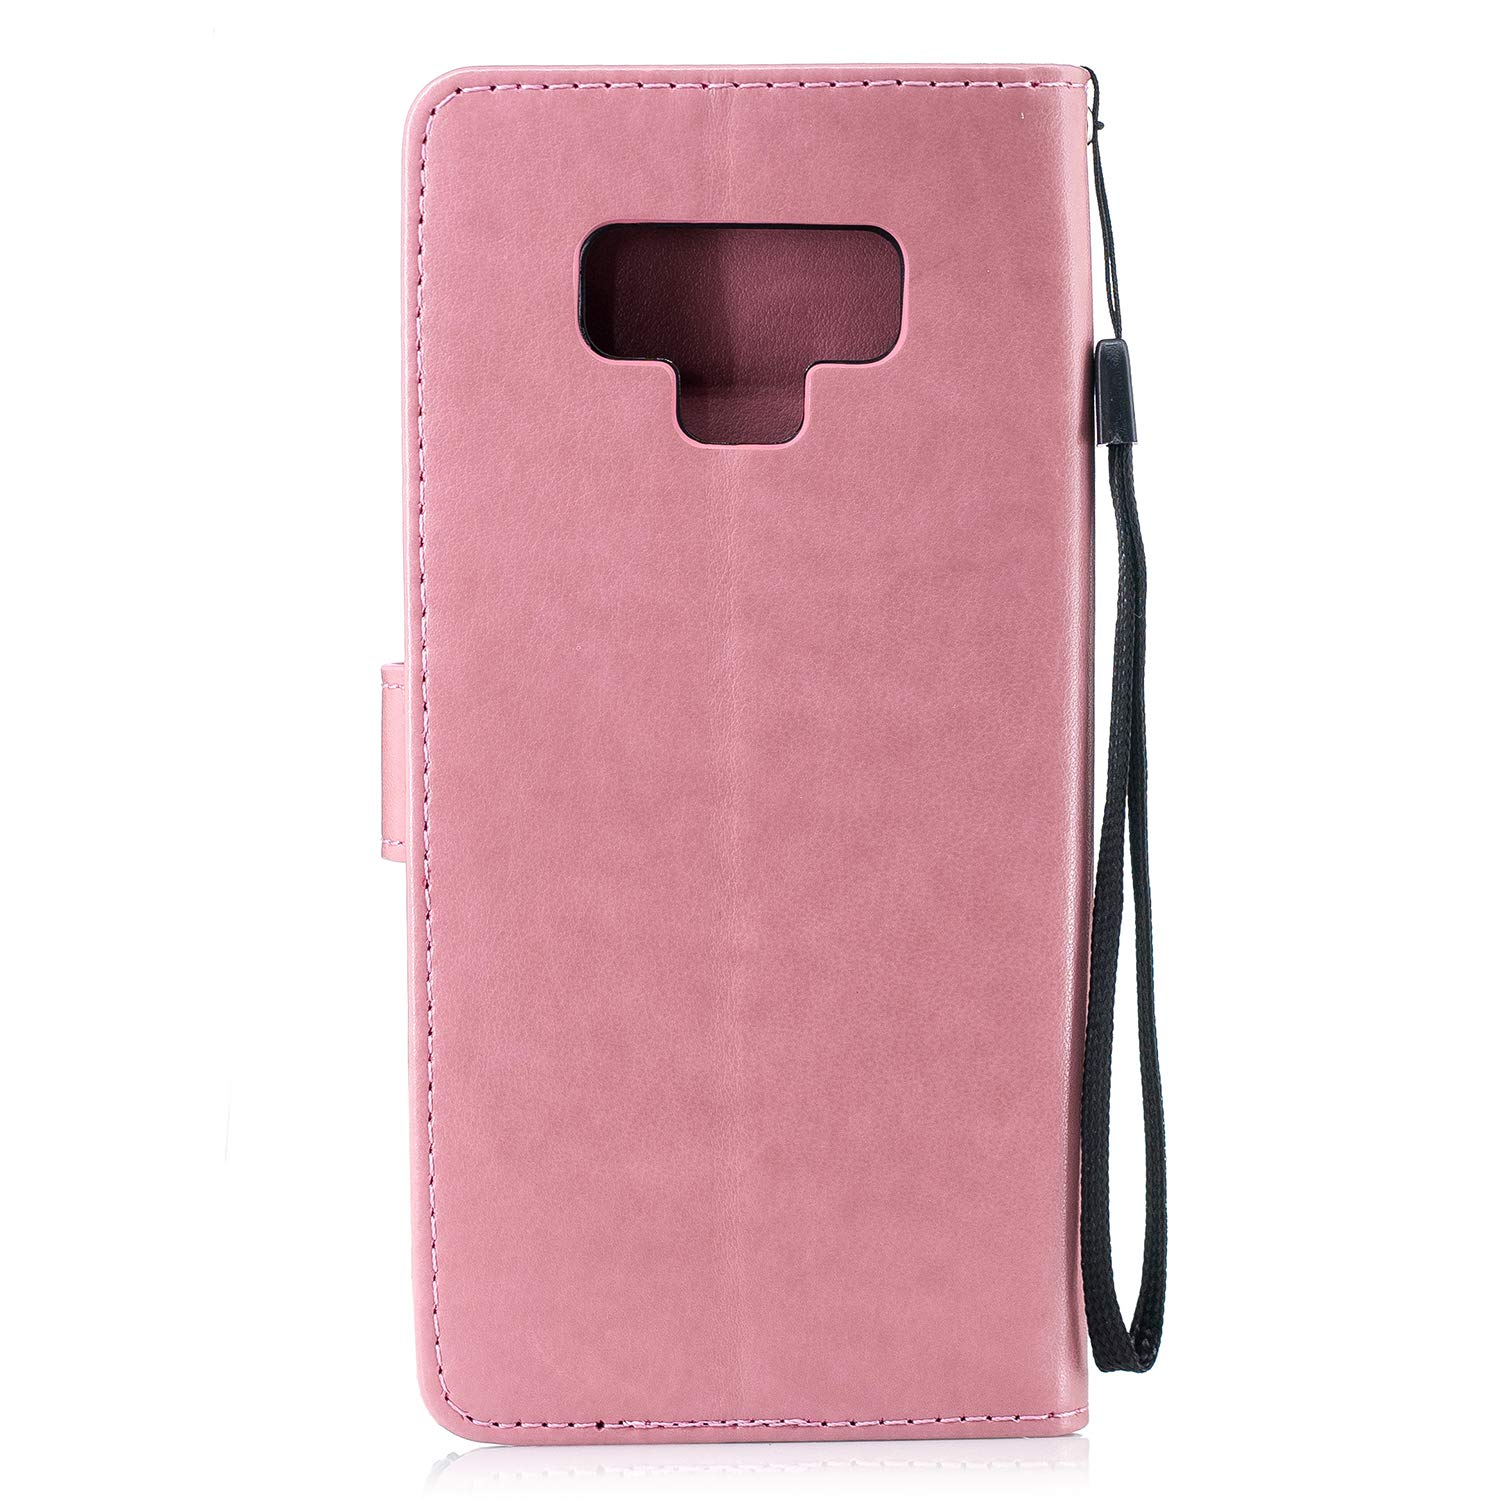 Samsung Galaxy Note 9 Case, AIIYG DS 3D Pattern [Kickstand Feature] Flip Folio Leather Wallet Case with ID and Credit Card Pockets for Galaxy Note 9 (Pink Pineapple) by AIIYG DS (Image #2)